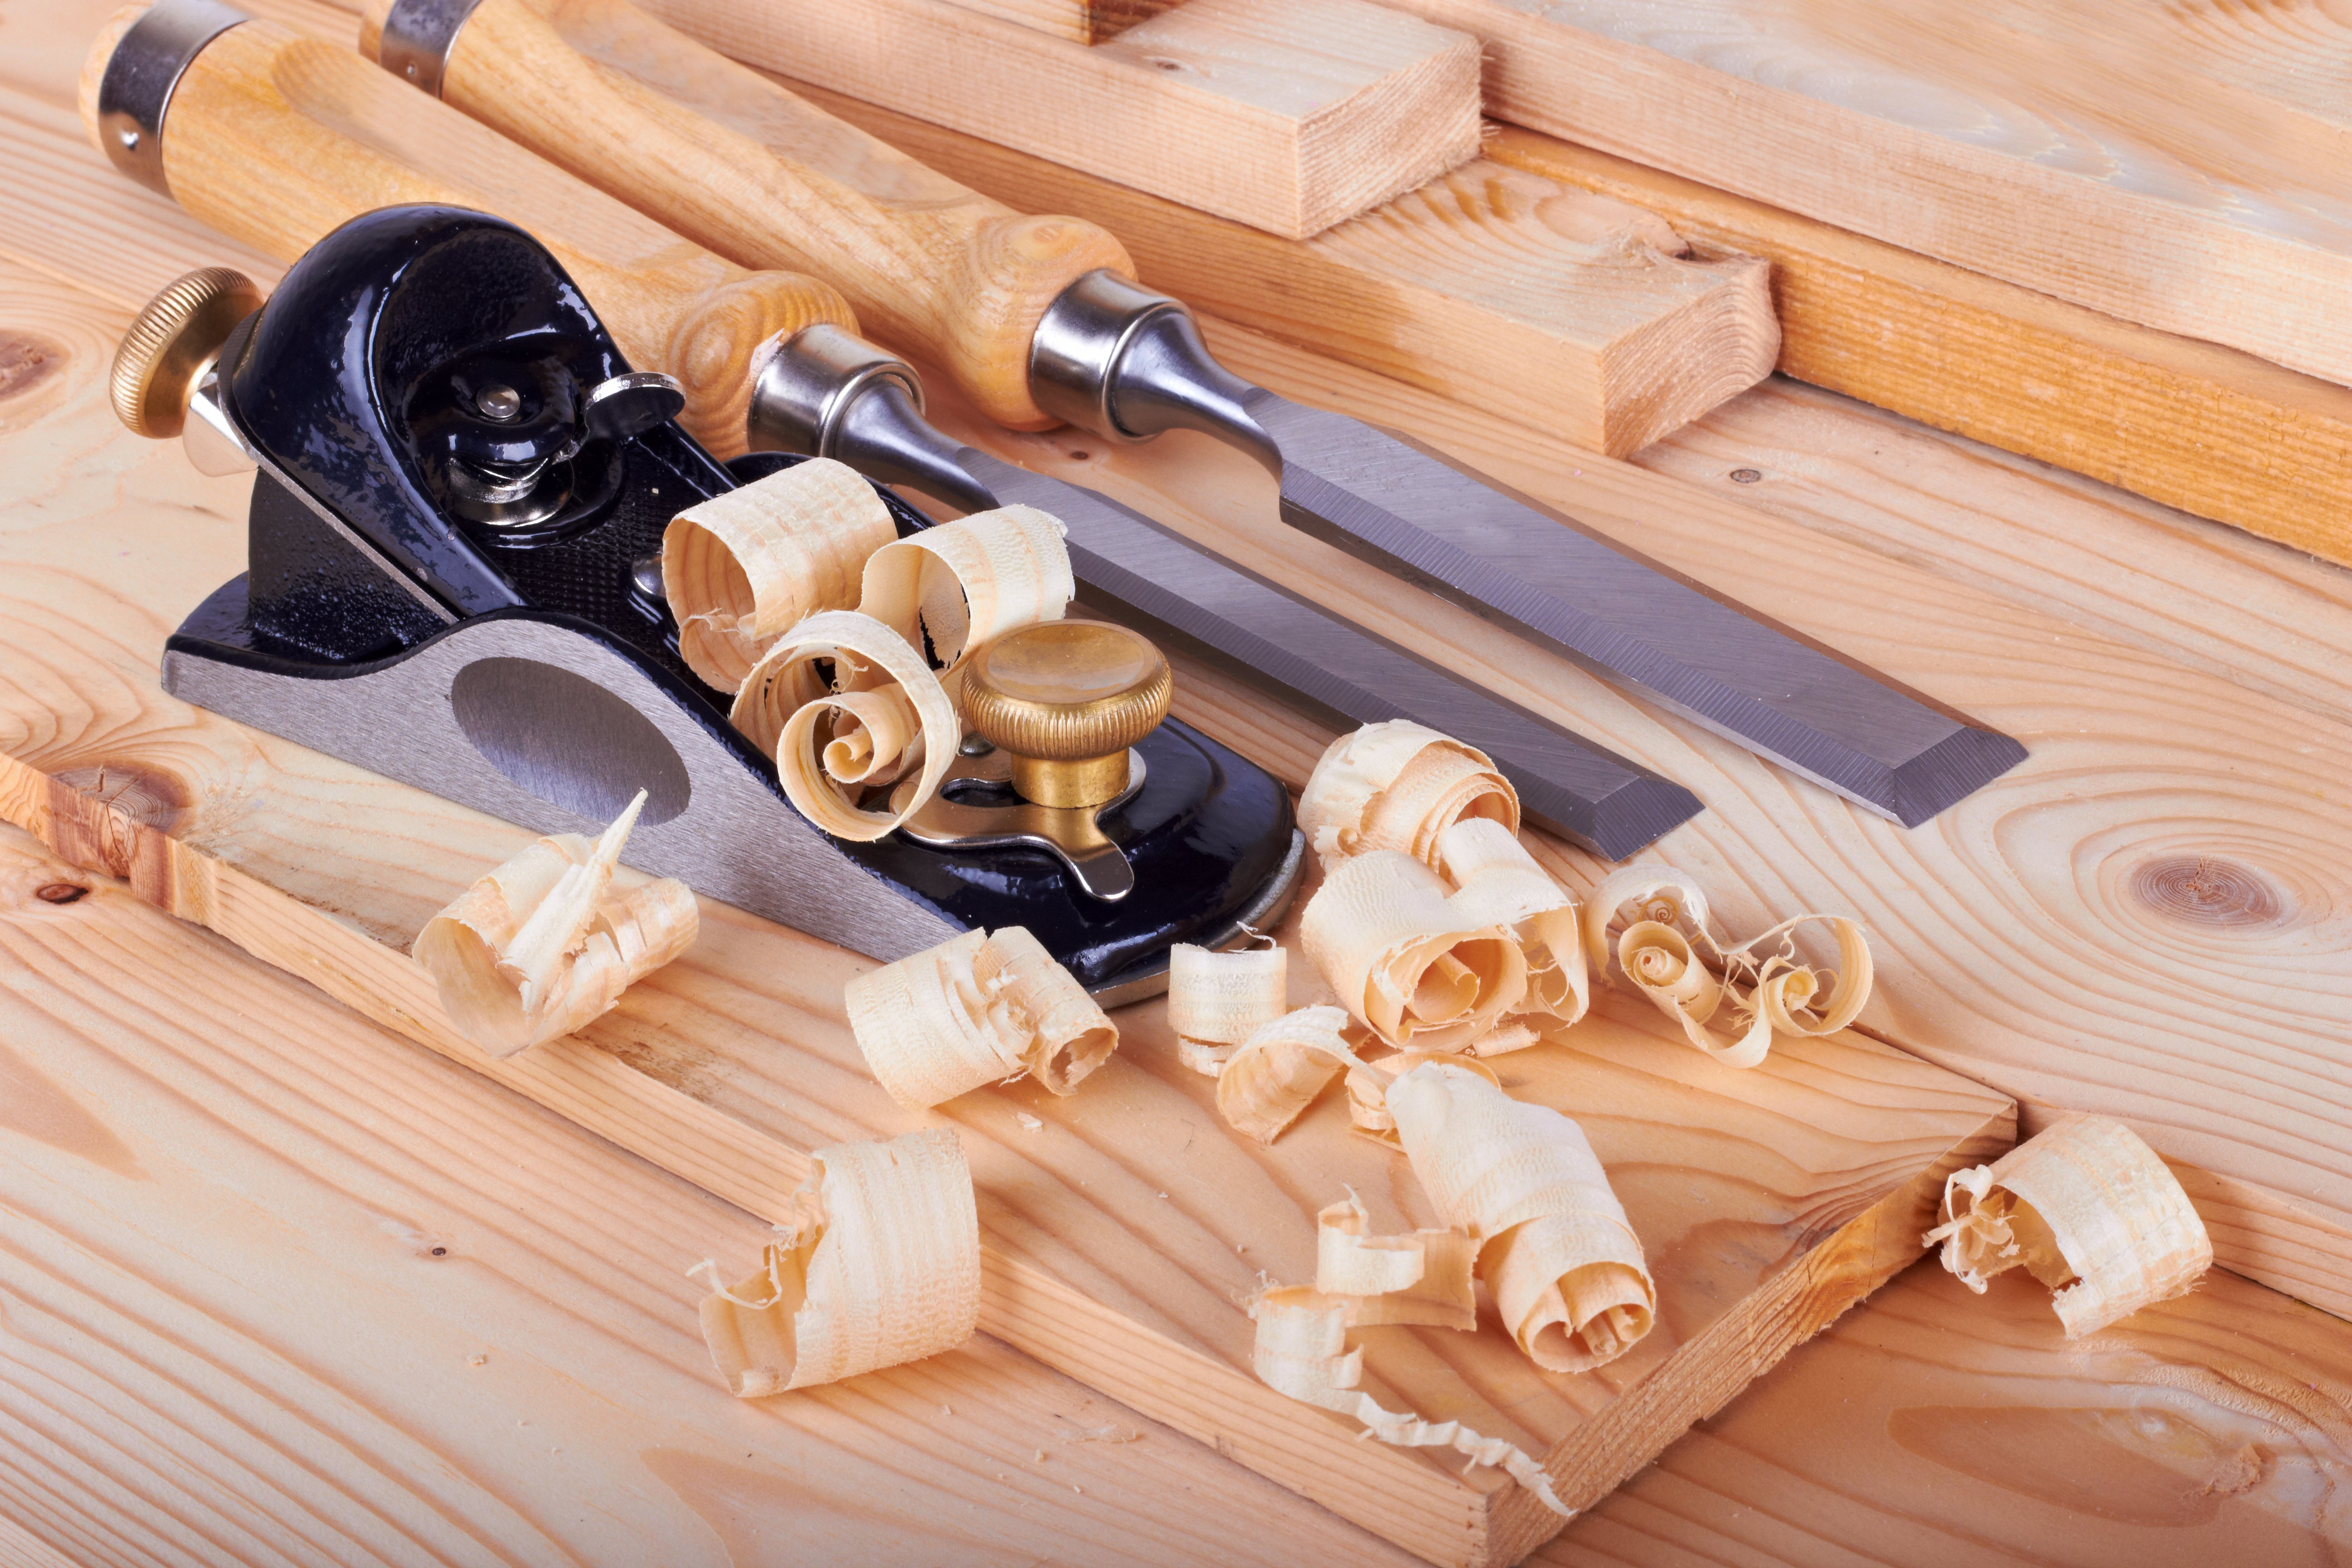 woodworking manufacturing